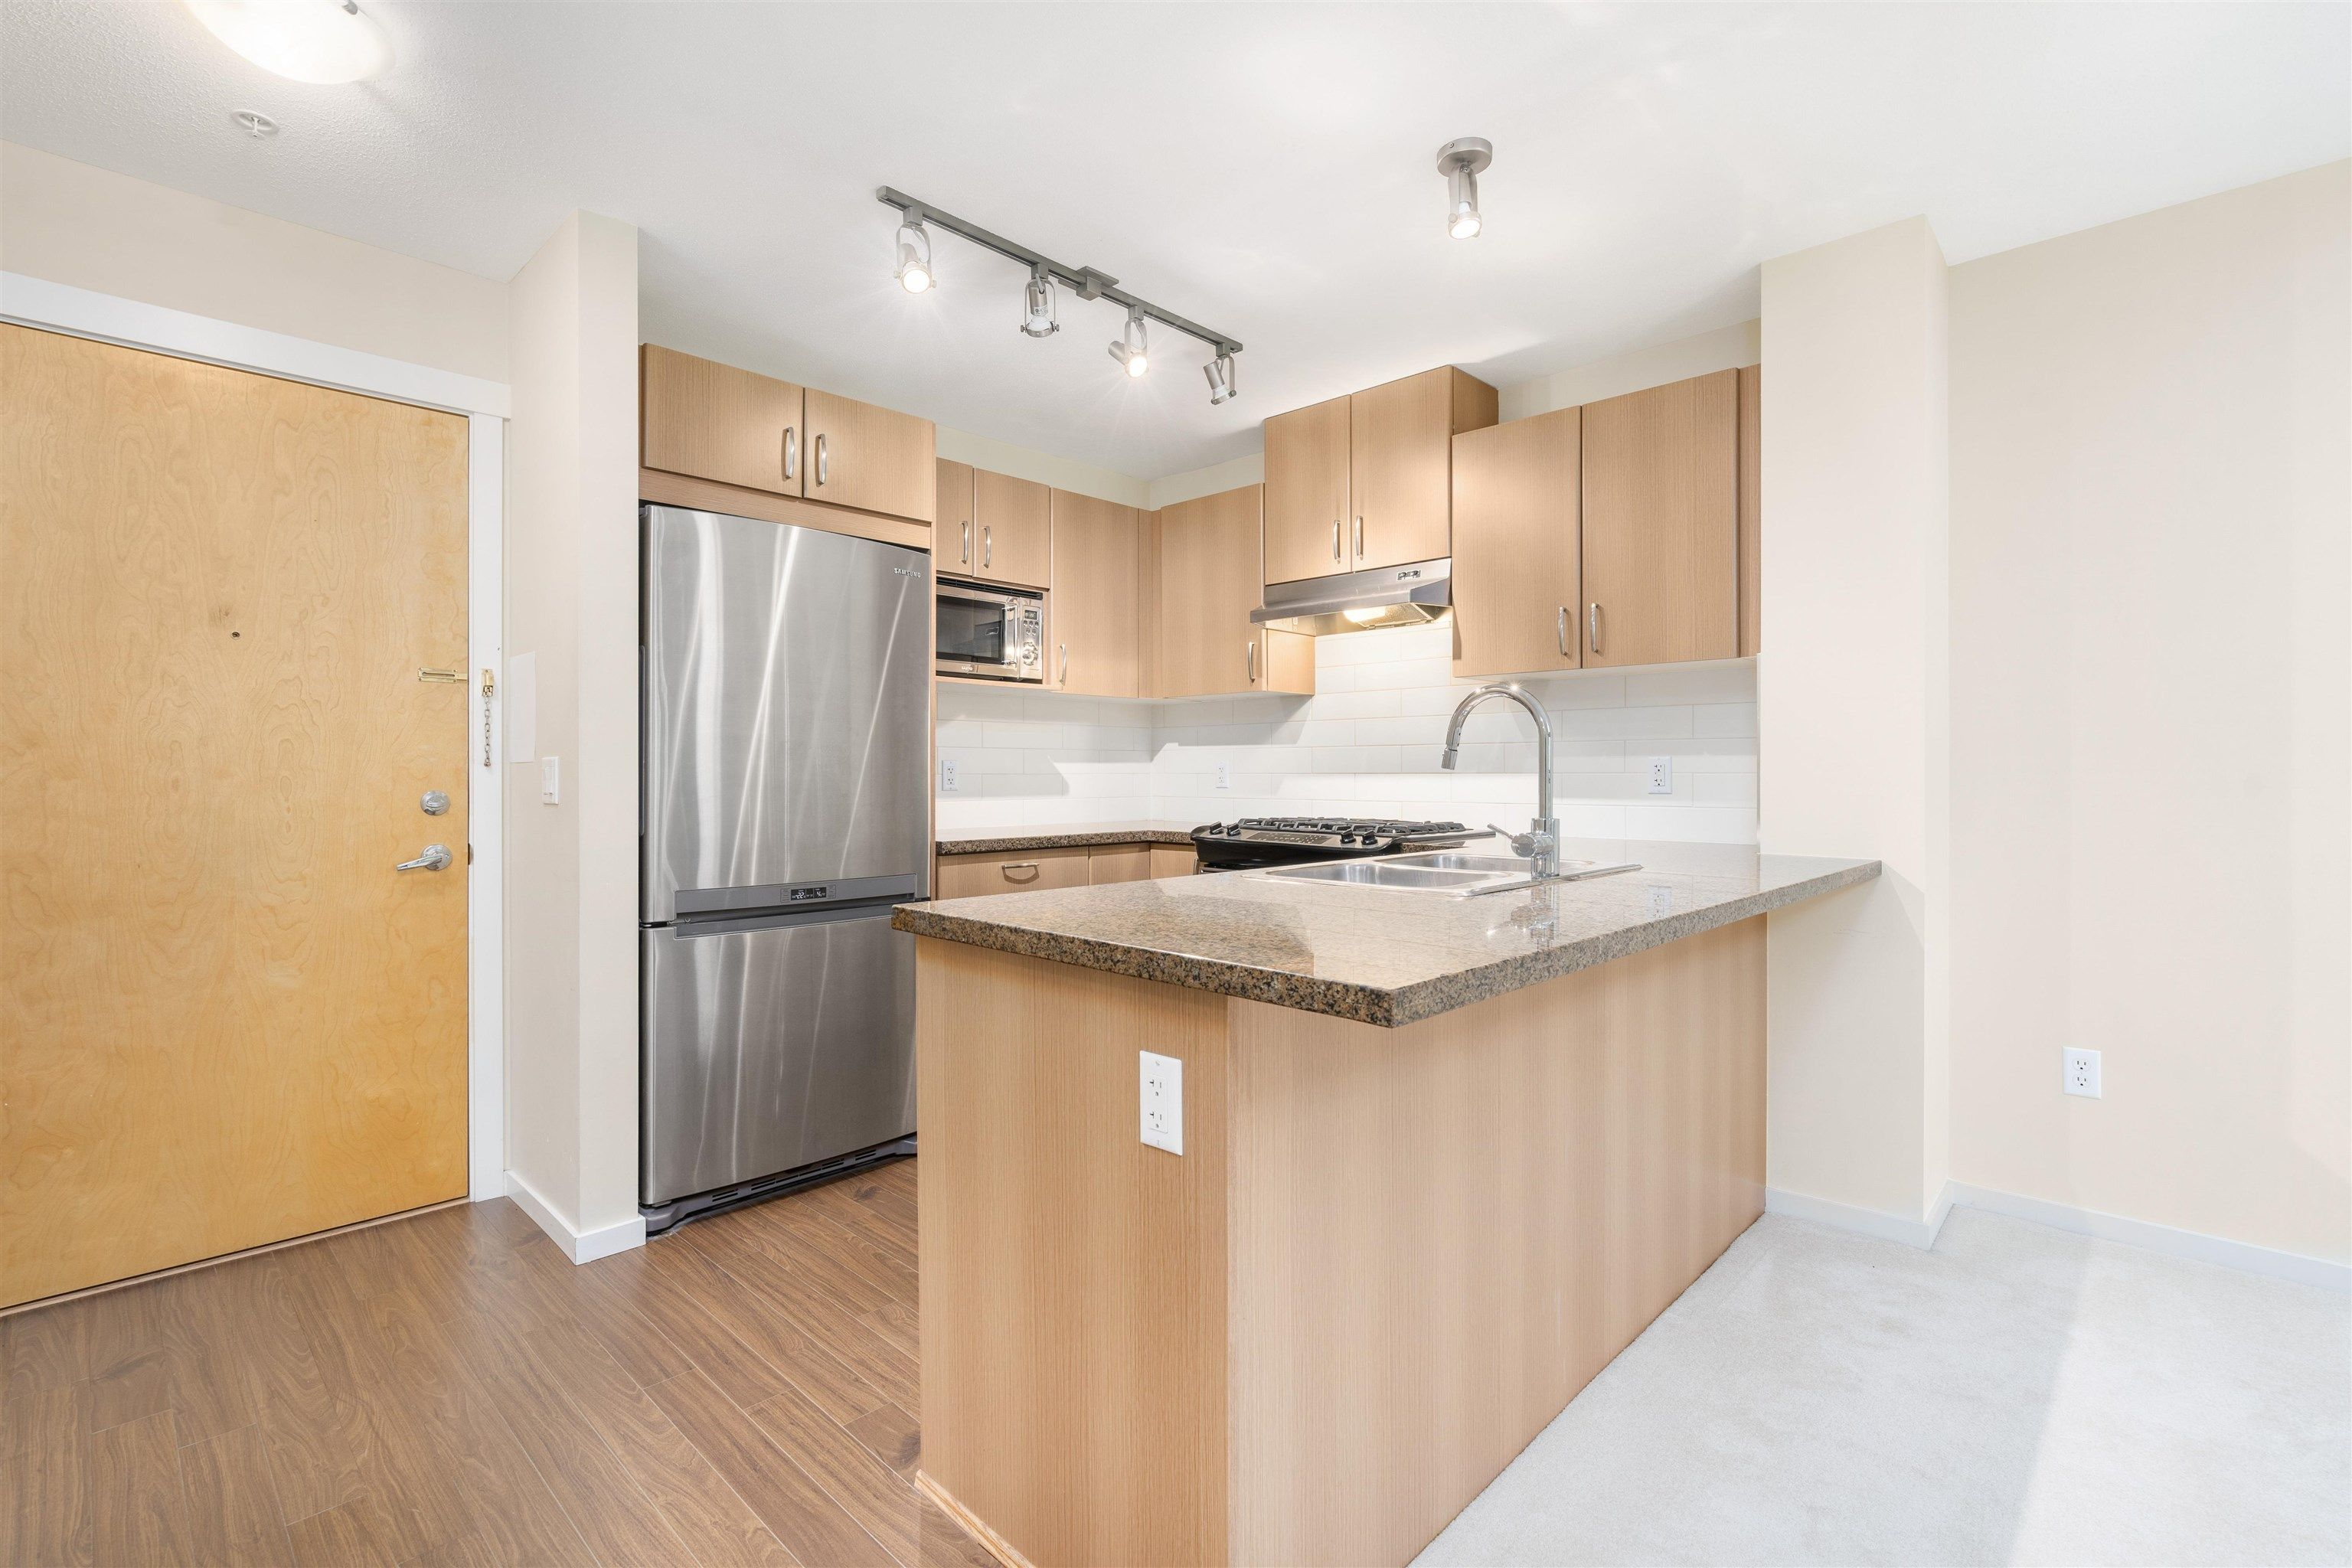 Main Photo: 310 3050 DAYANEE SPRINGS Boulevard in Coquitlam: Westwood Plateau Condo for sale : MLS®# R2624730